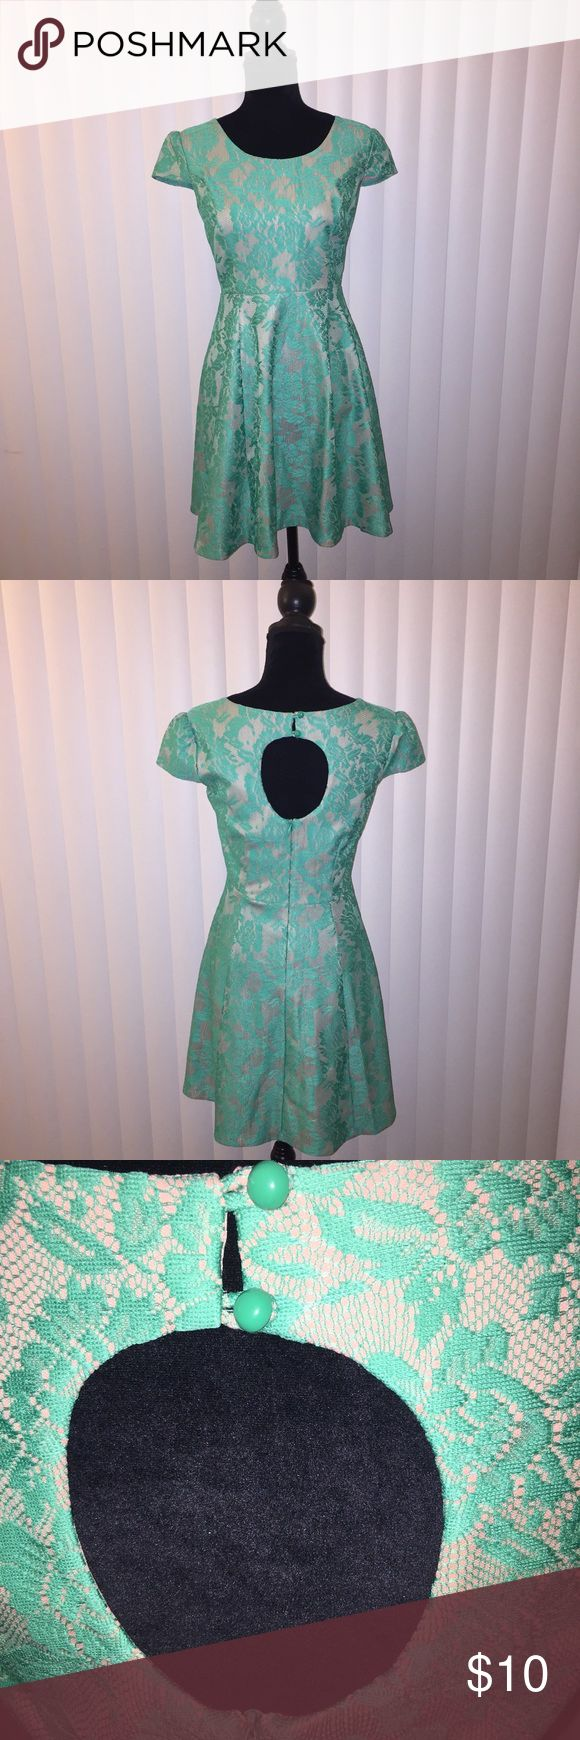 Semi Casual Dress Size 6 This green and beige dress is semi casual and can be worn to work, weddings, graduation or any other special occasion. Dresses